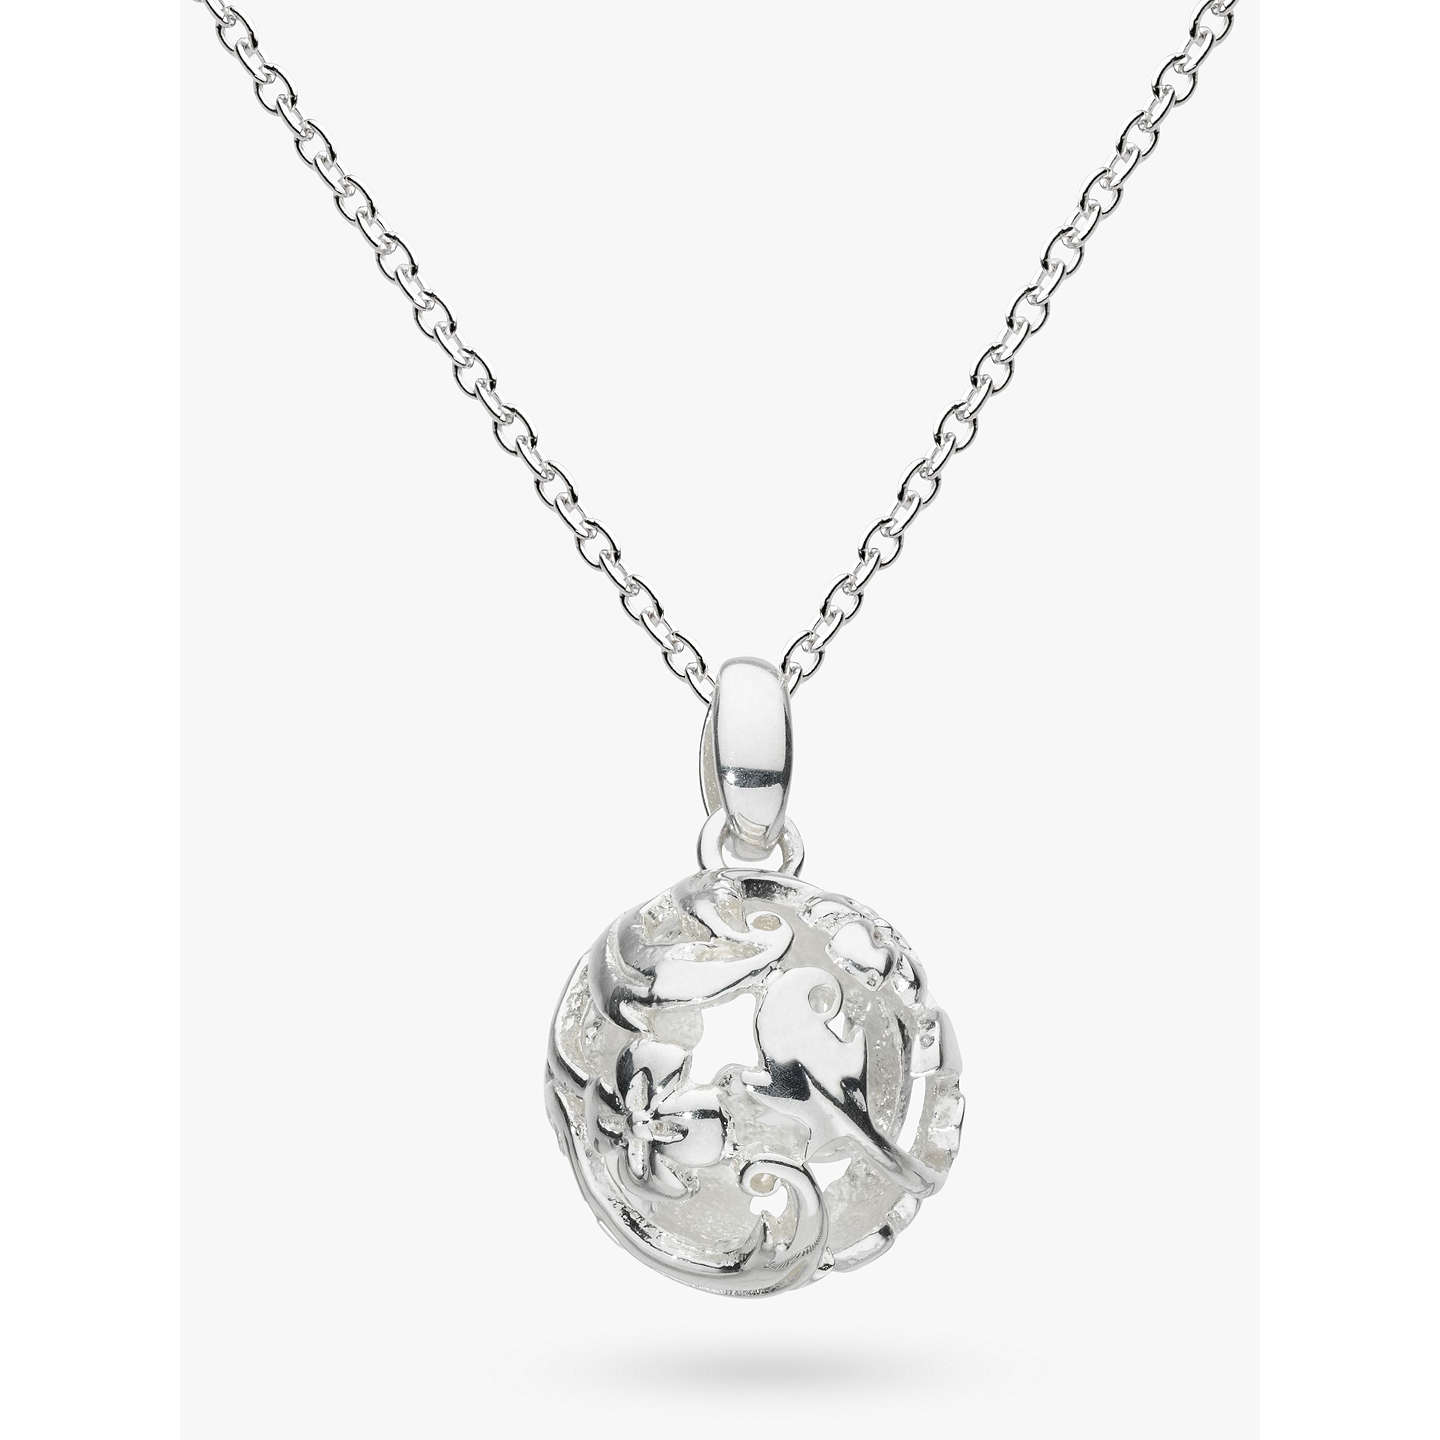 Kit heath sterling silver carved ball pendant at john lewis buykit heath sterling silver carved ball pendant online at johnlewis aloadofball Image collections